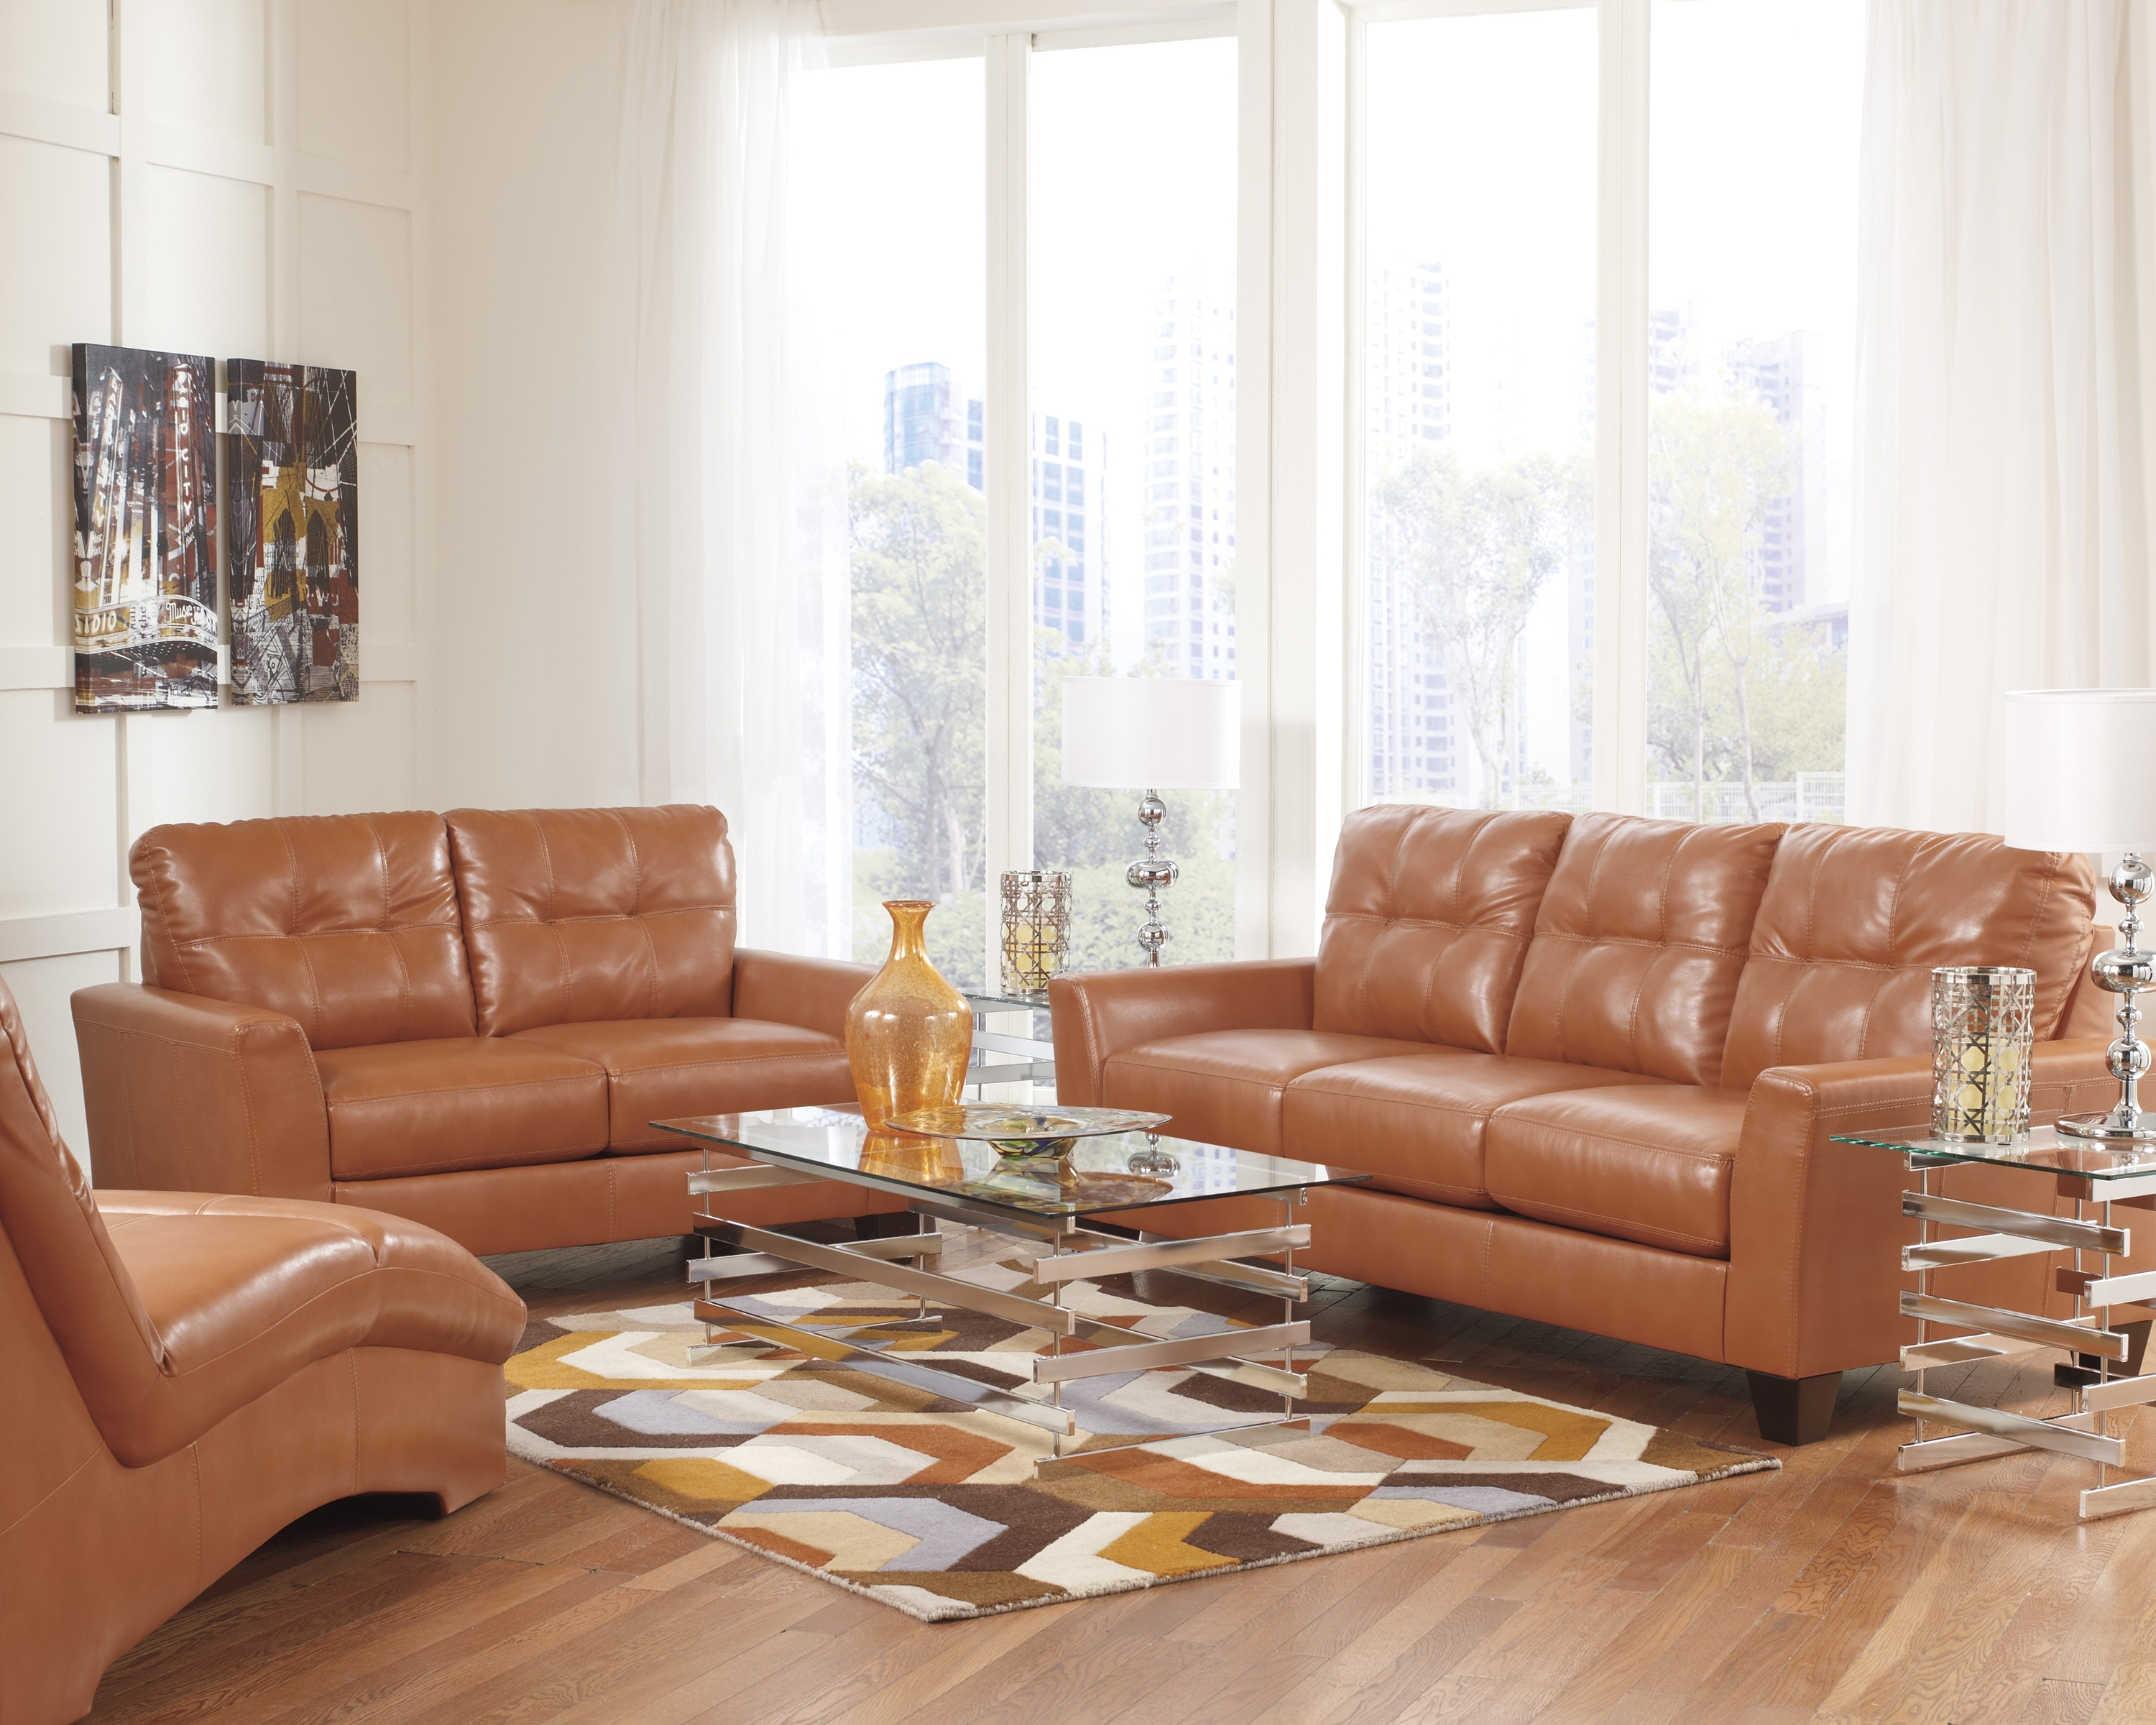 Paulie Durablend Leather Orange Sofa Collection | Ashley Furniture Regarding Ashley Tufted Sofas (Image 6 of 10)